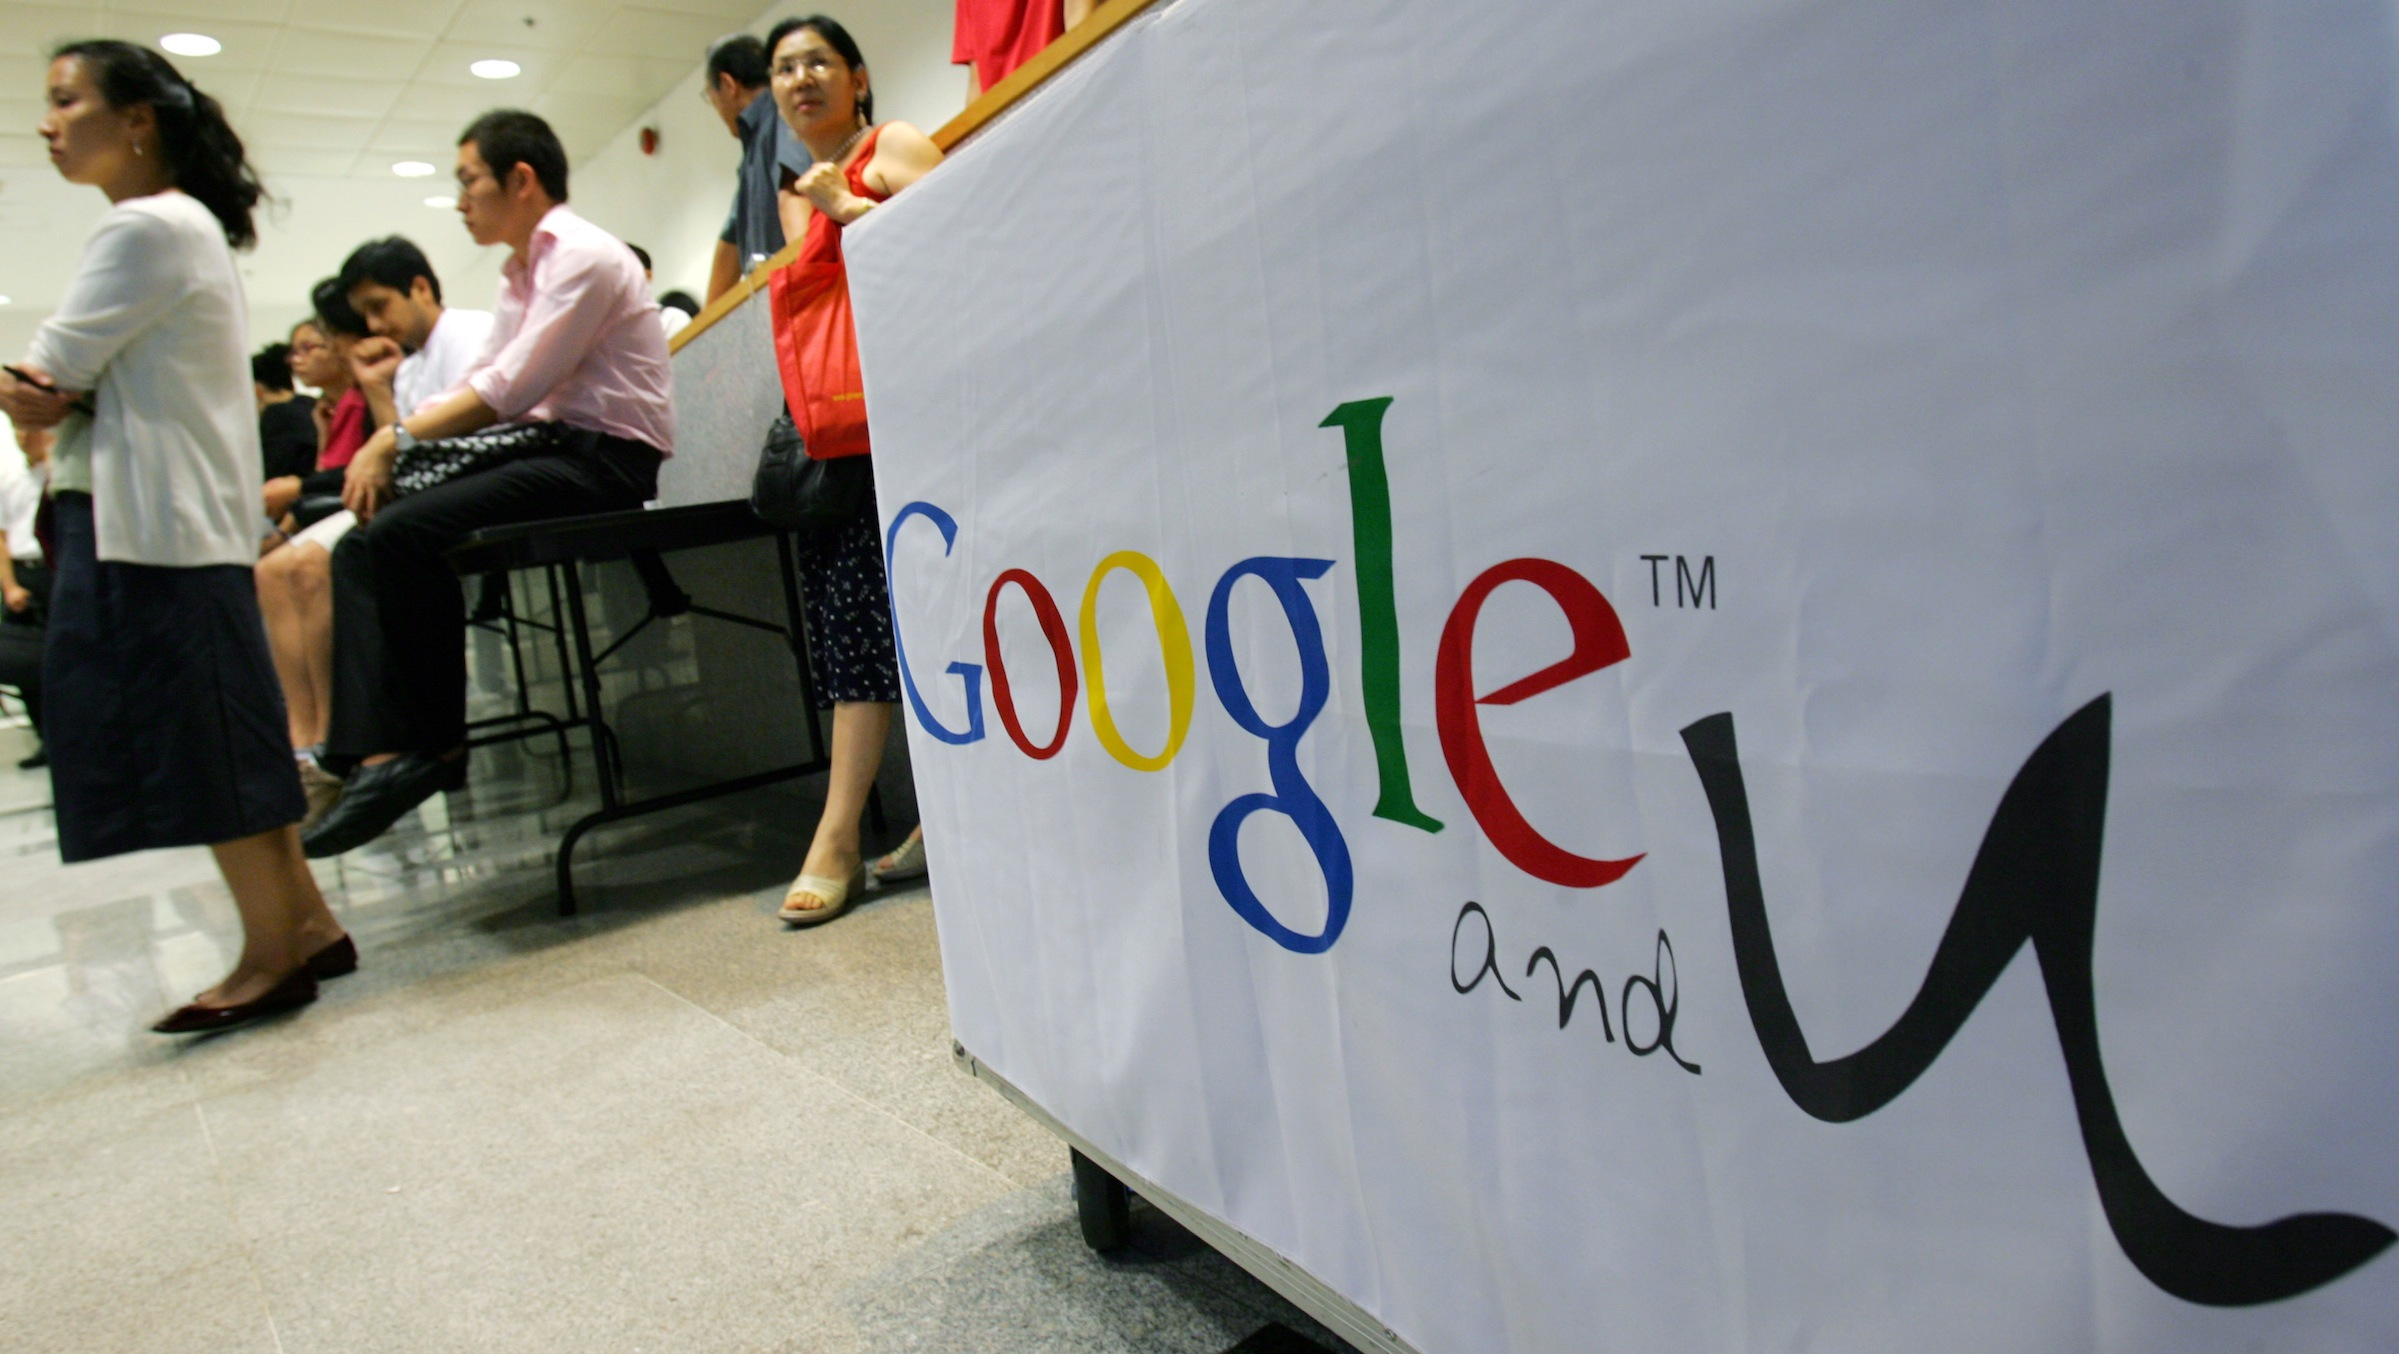 Students inside a campus watch the live broadcast of Lee Kai-fu, vice-president of Google Inc. and co-president of Google China, holding a talk at the University of Hong Kong September 14, 2006.       REUTERS/Bobby Yip  (HONG KONG) - RTR1HBO4